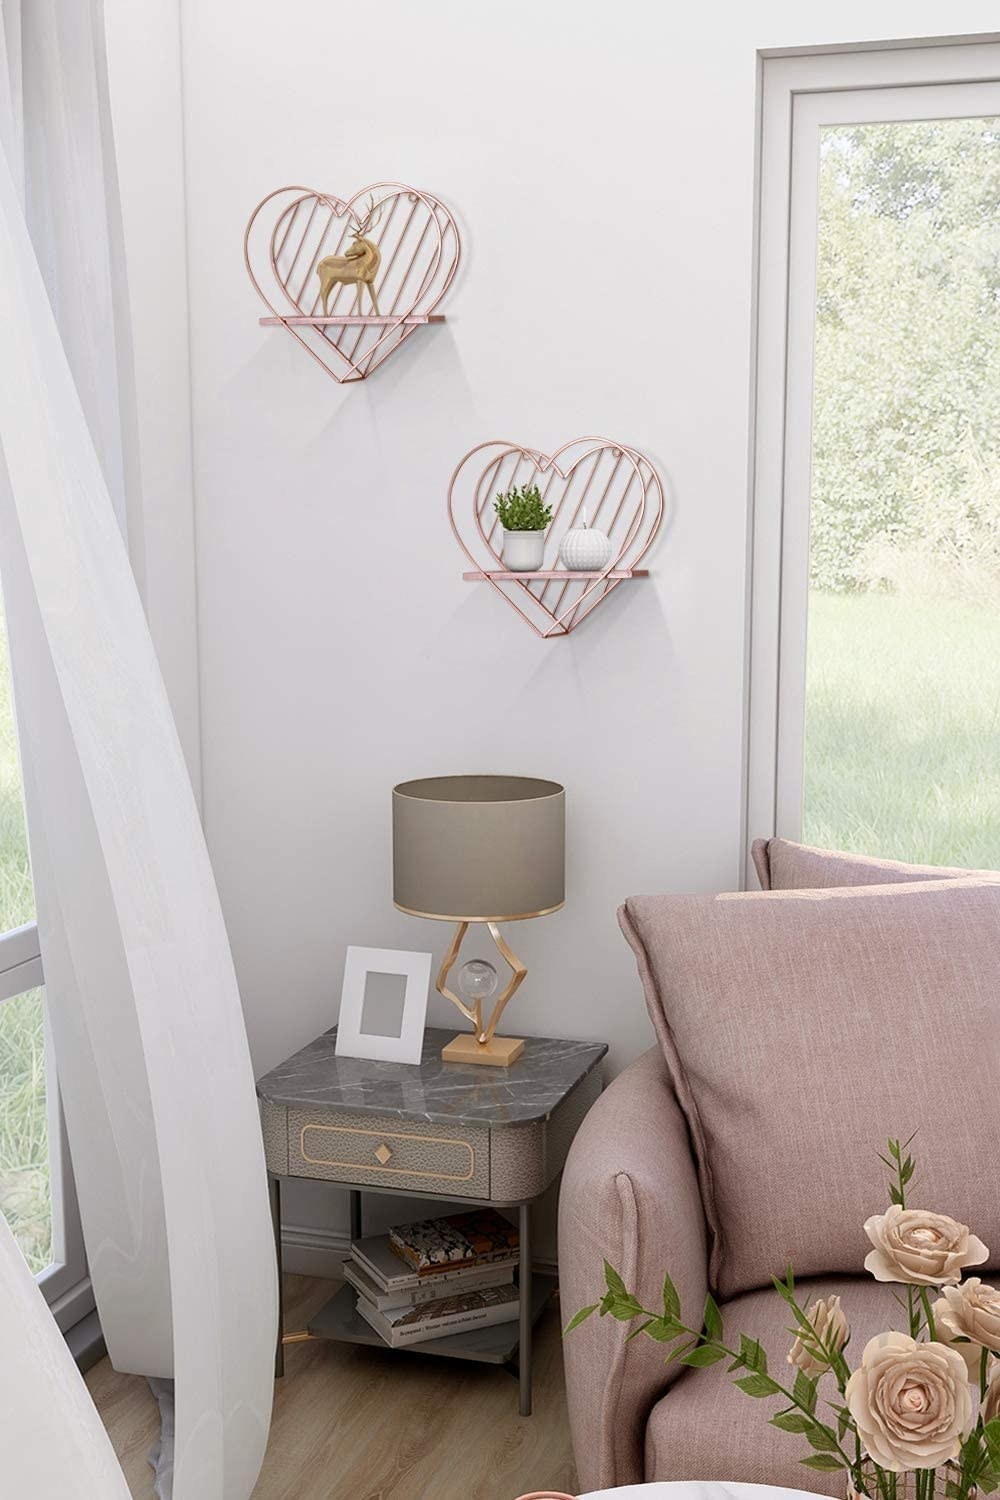 two of the heart-shaped shelves hanging in a living room